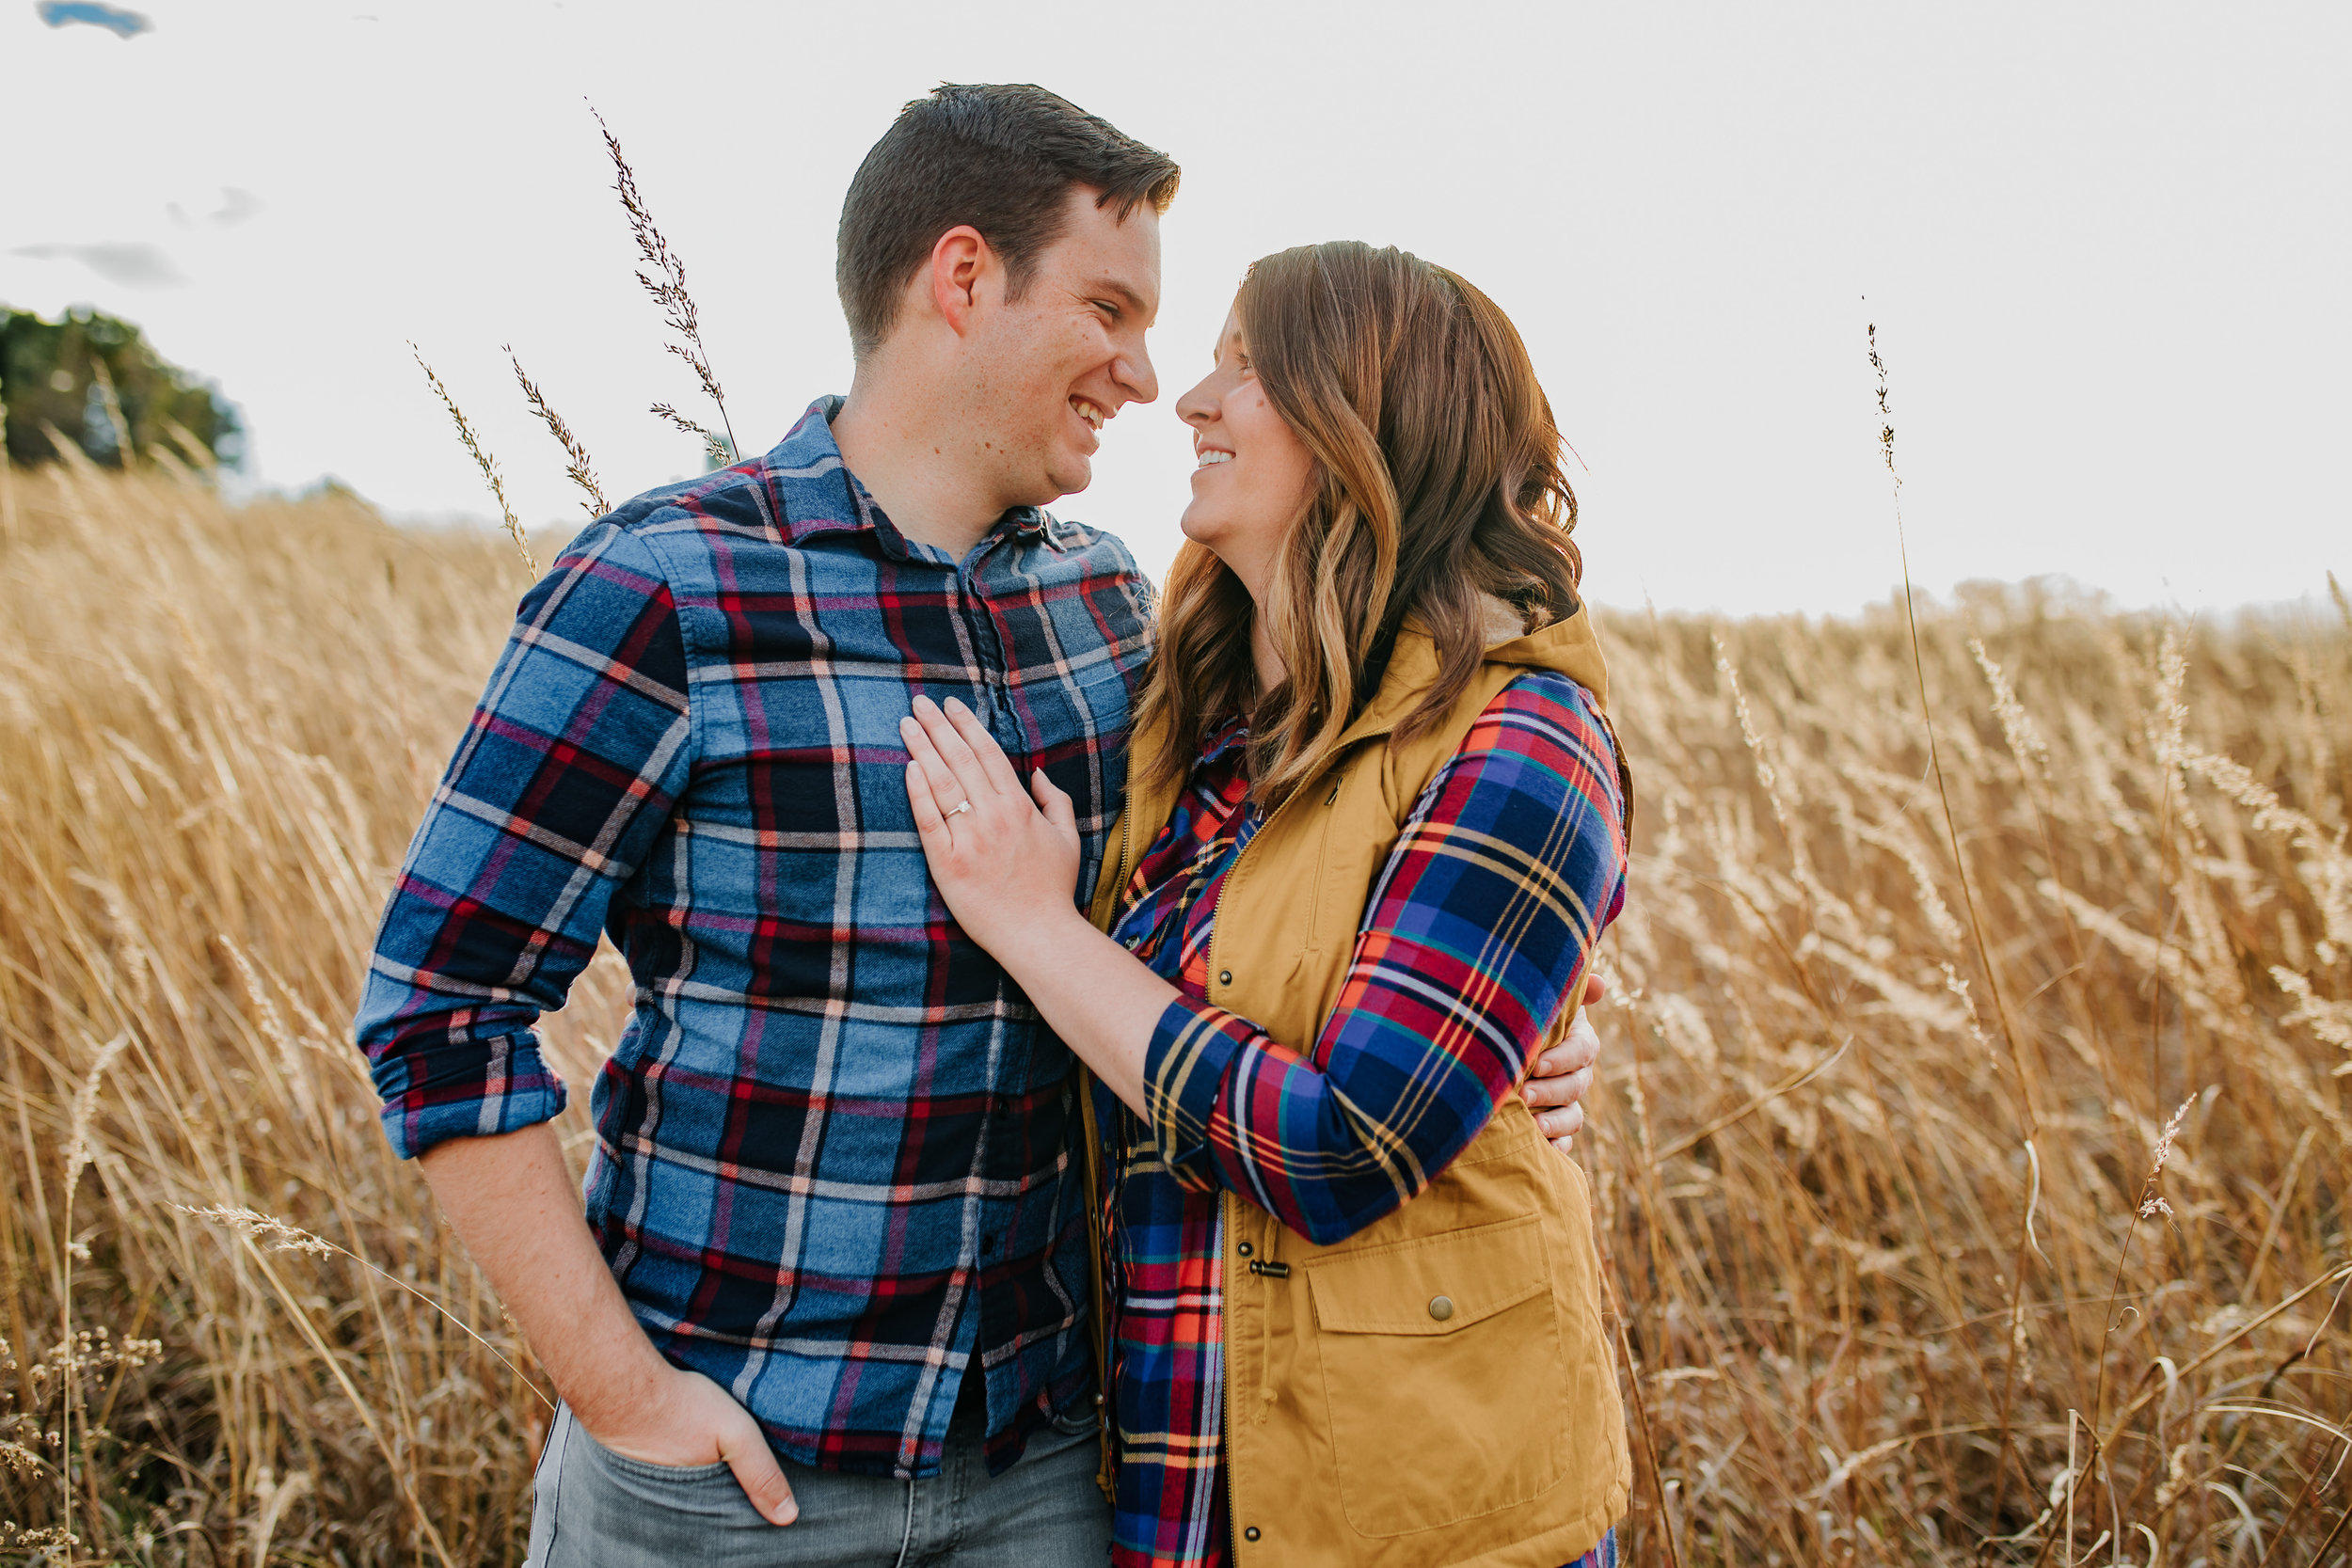 Katie & Adam - Engaged - Nathaniel Jensen Photography - Omaha Nebraska Wedding Photograper - Omaha Nebraska Engagement Session - Chalco Hills Engagement Session-50.jpg